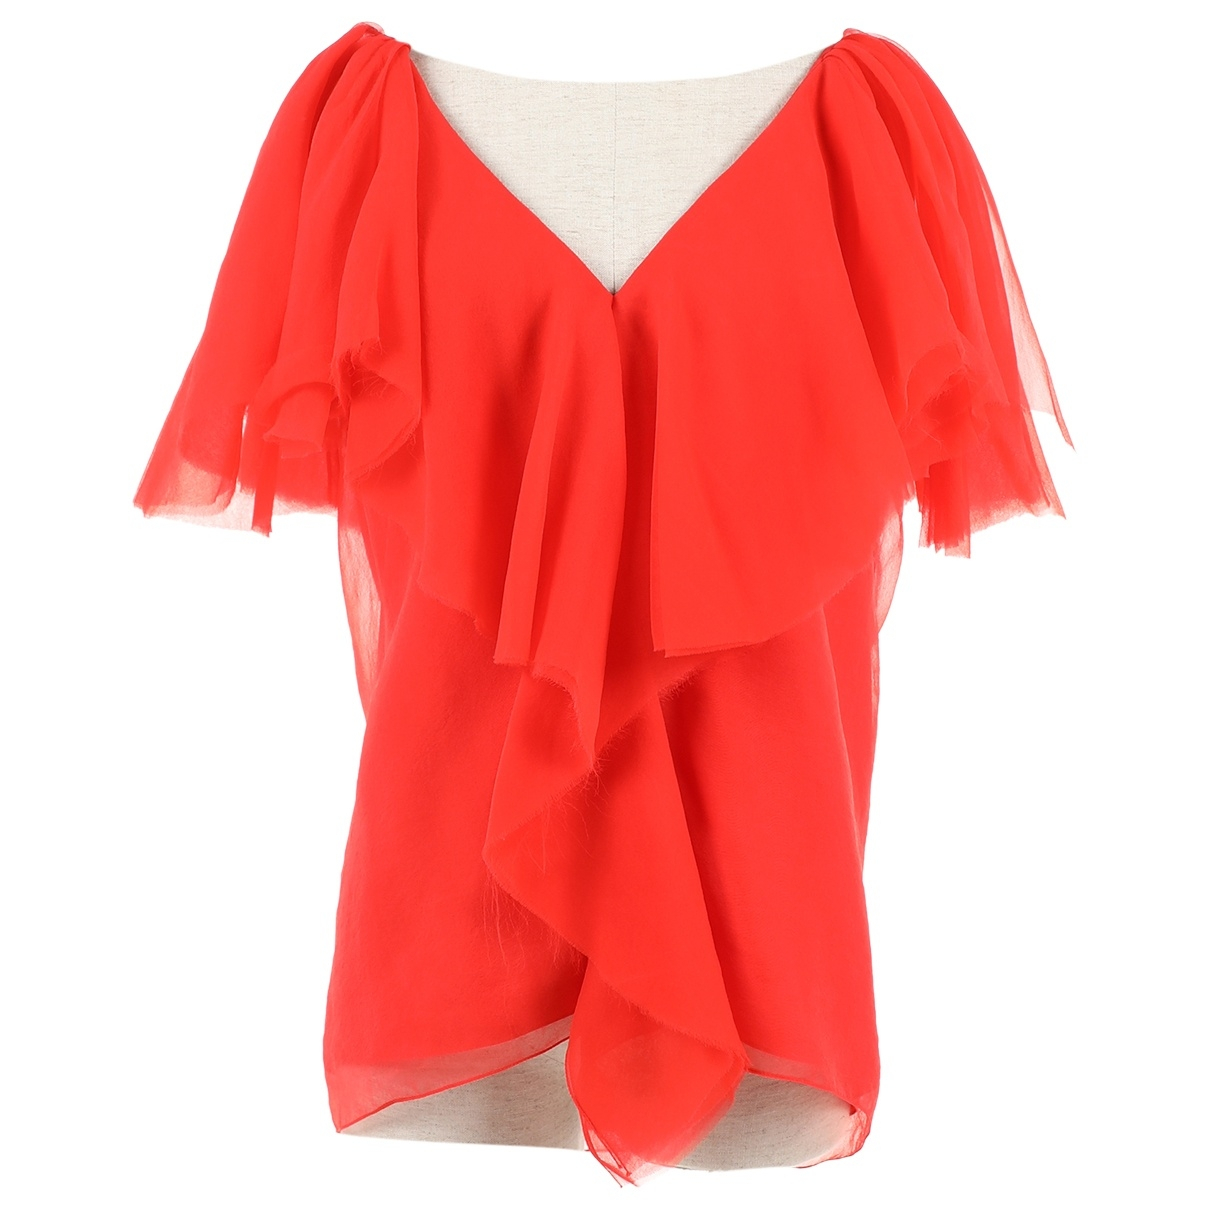 Lanvin \N Red Silk  top for Women 36 FR